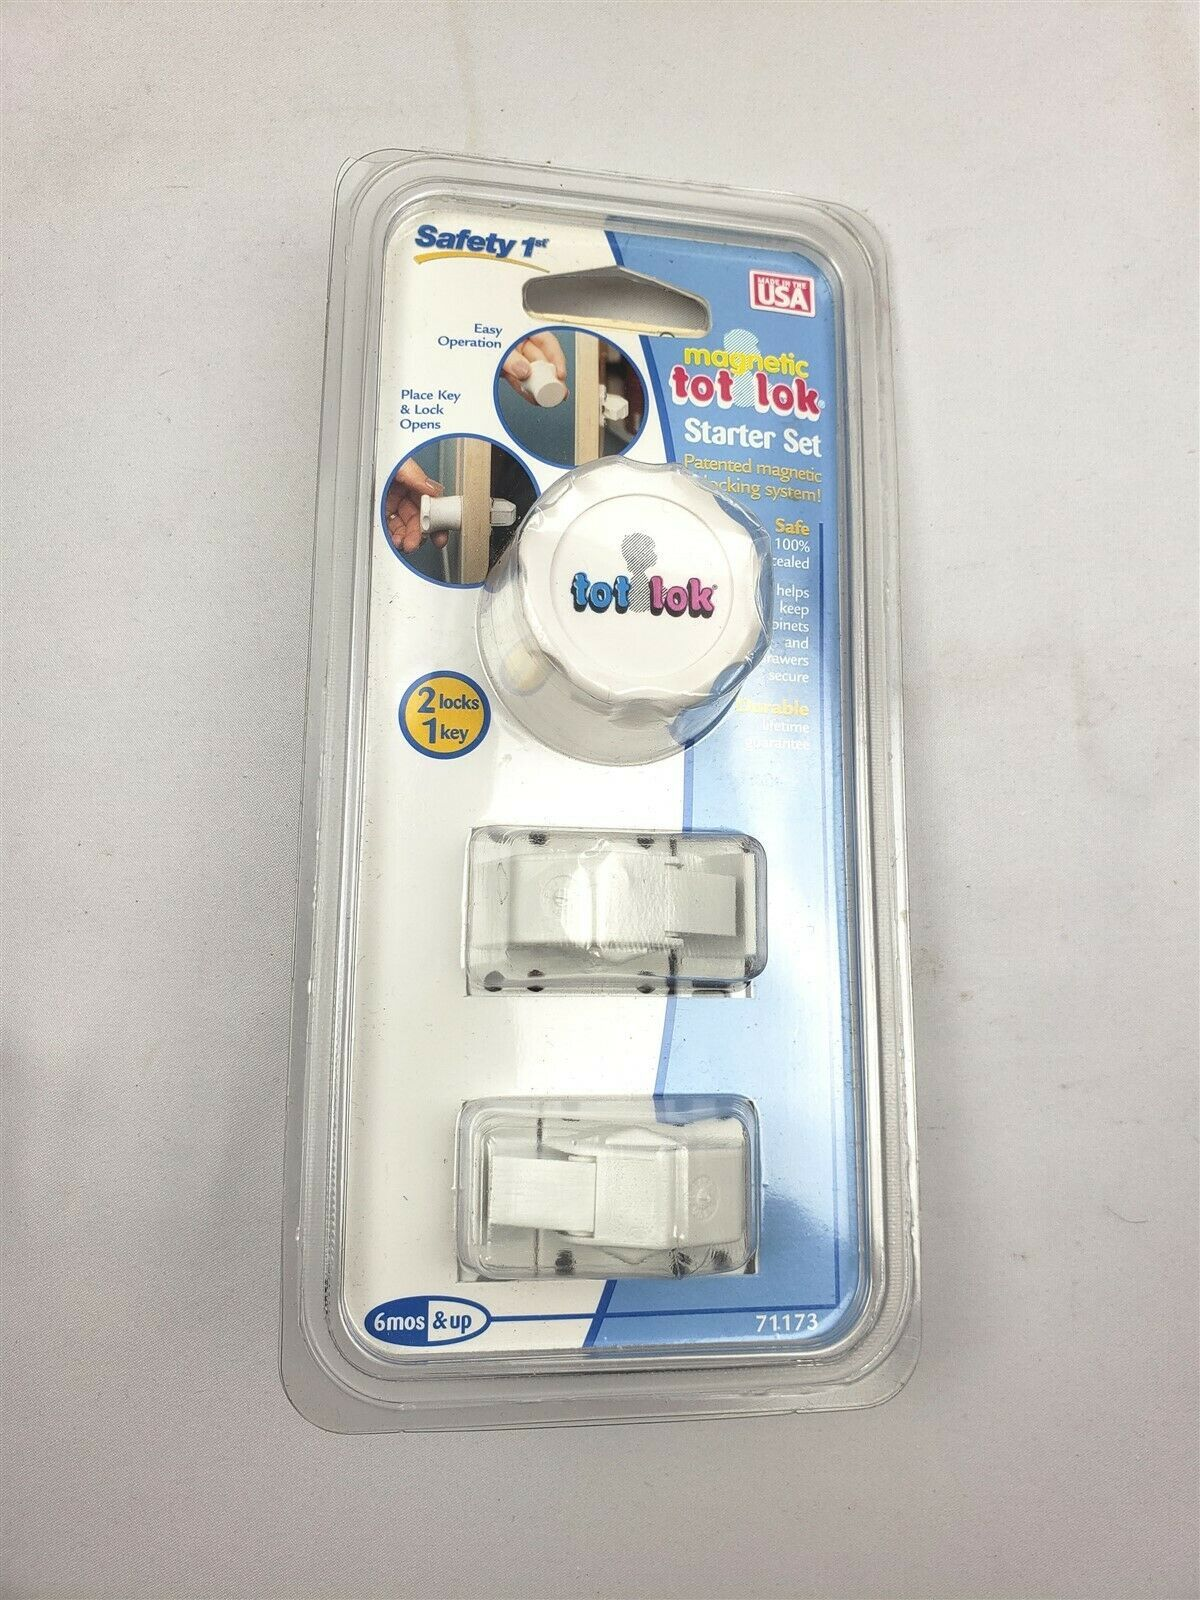 Safety 1st Magnetic Tot Lok Starter Set System w/ 2 Locks & Key New in Package